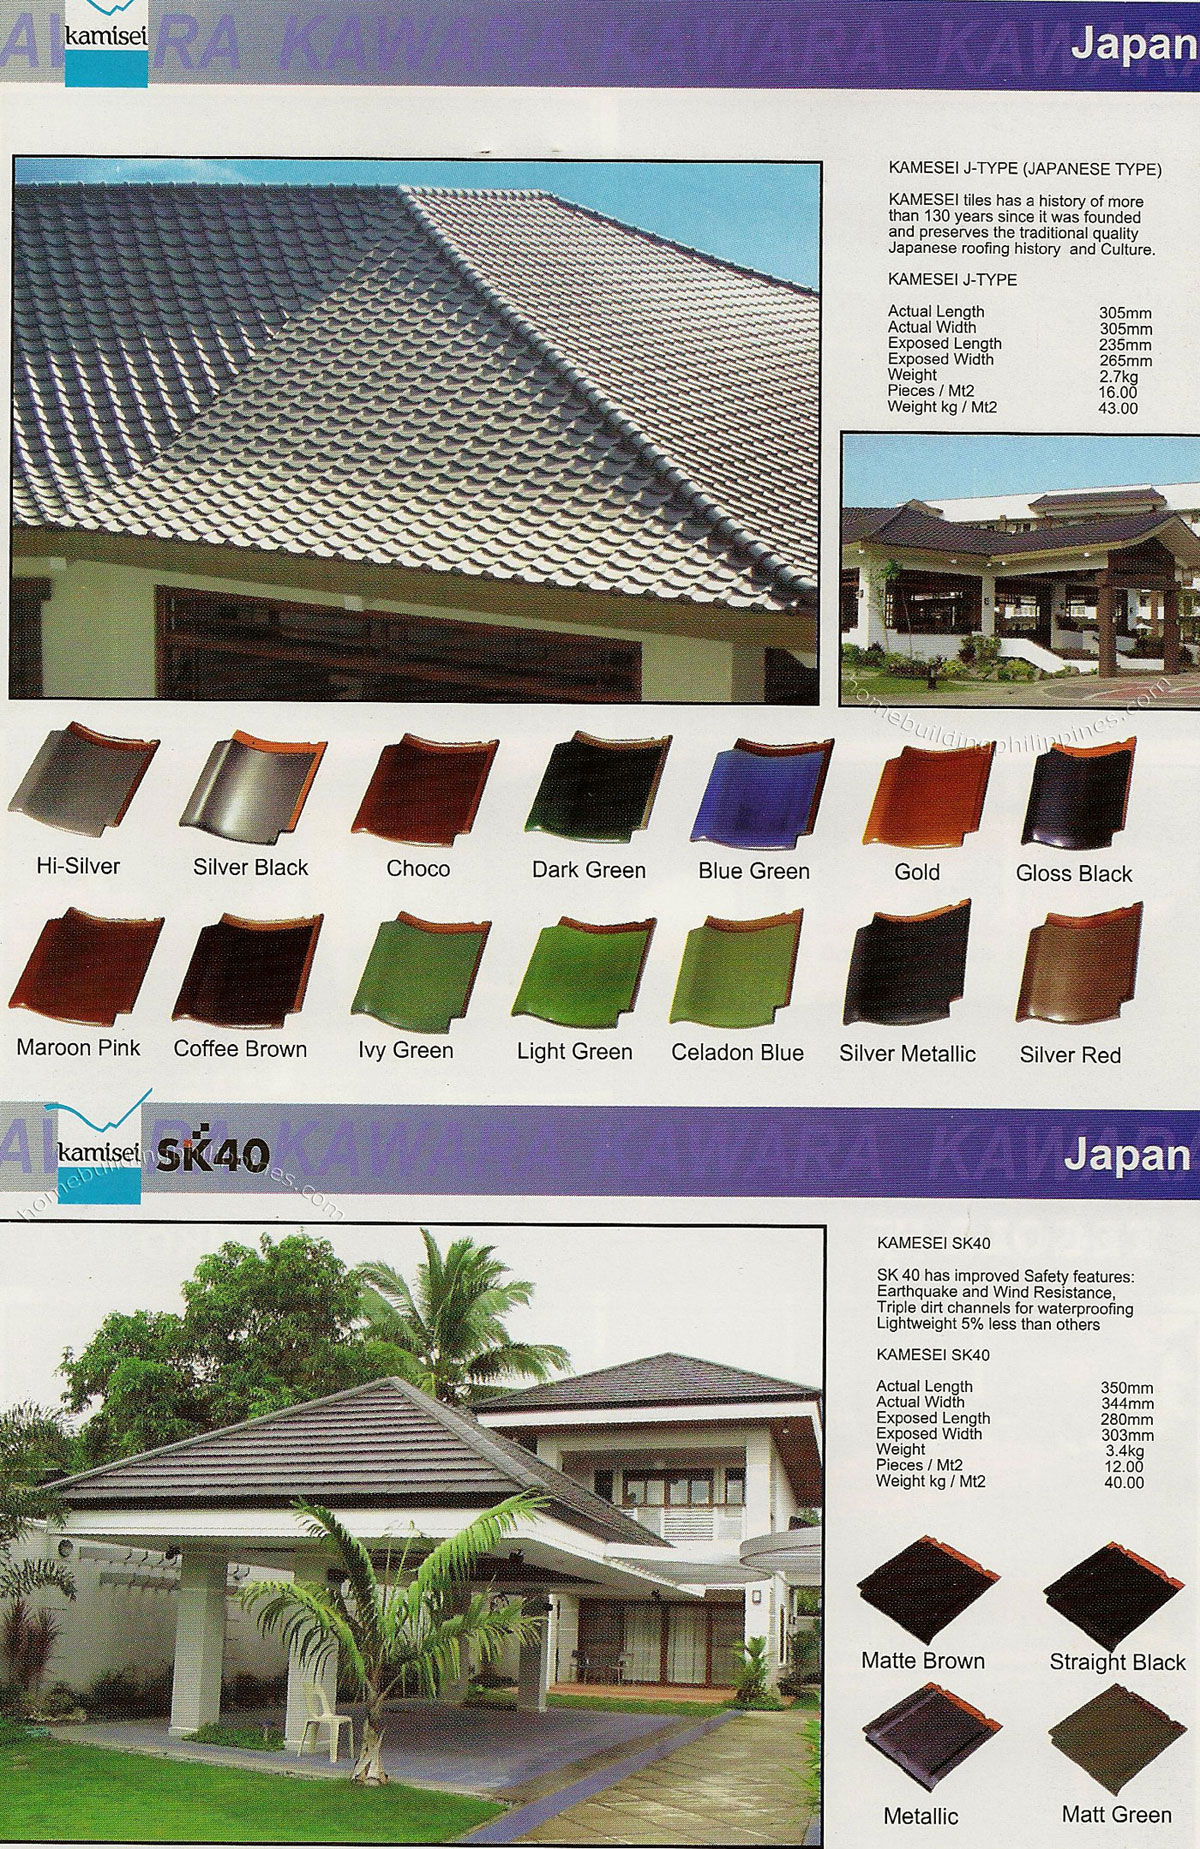 Kamiset Japanese Style Roofing Tile